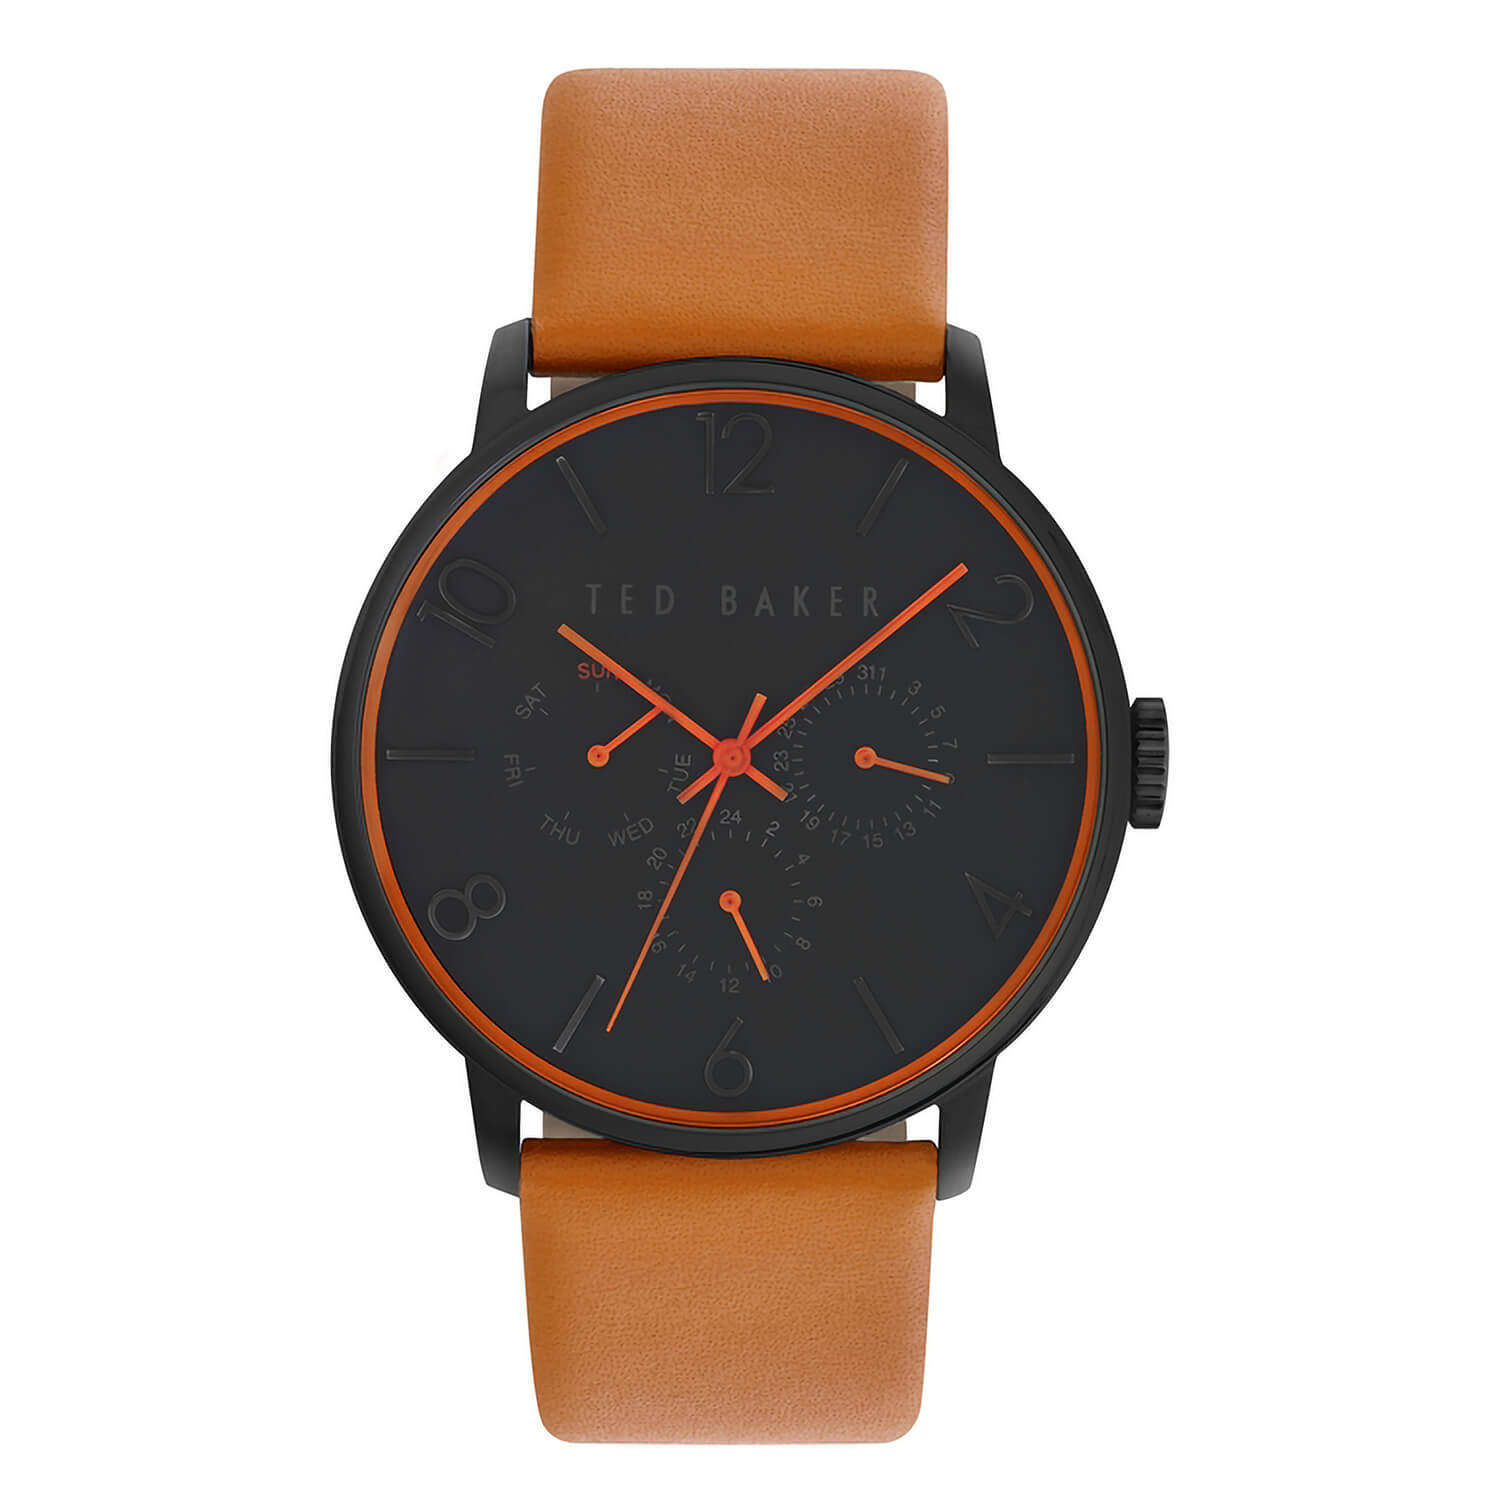 Ted Baker Men's Chronograph Orange Leather Strap Watch